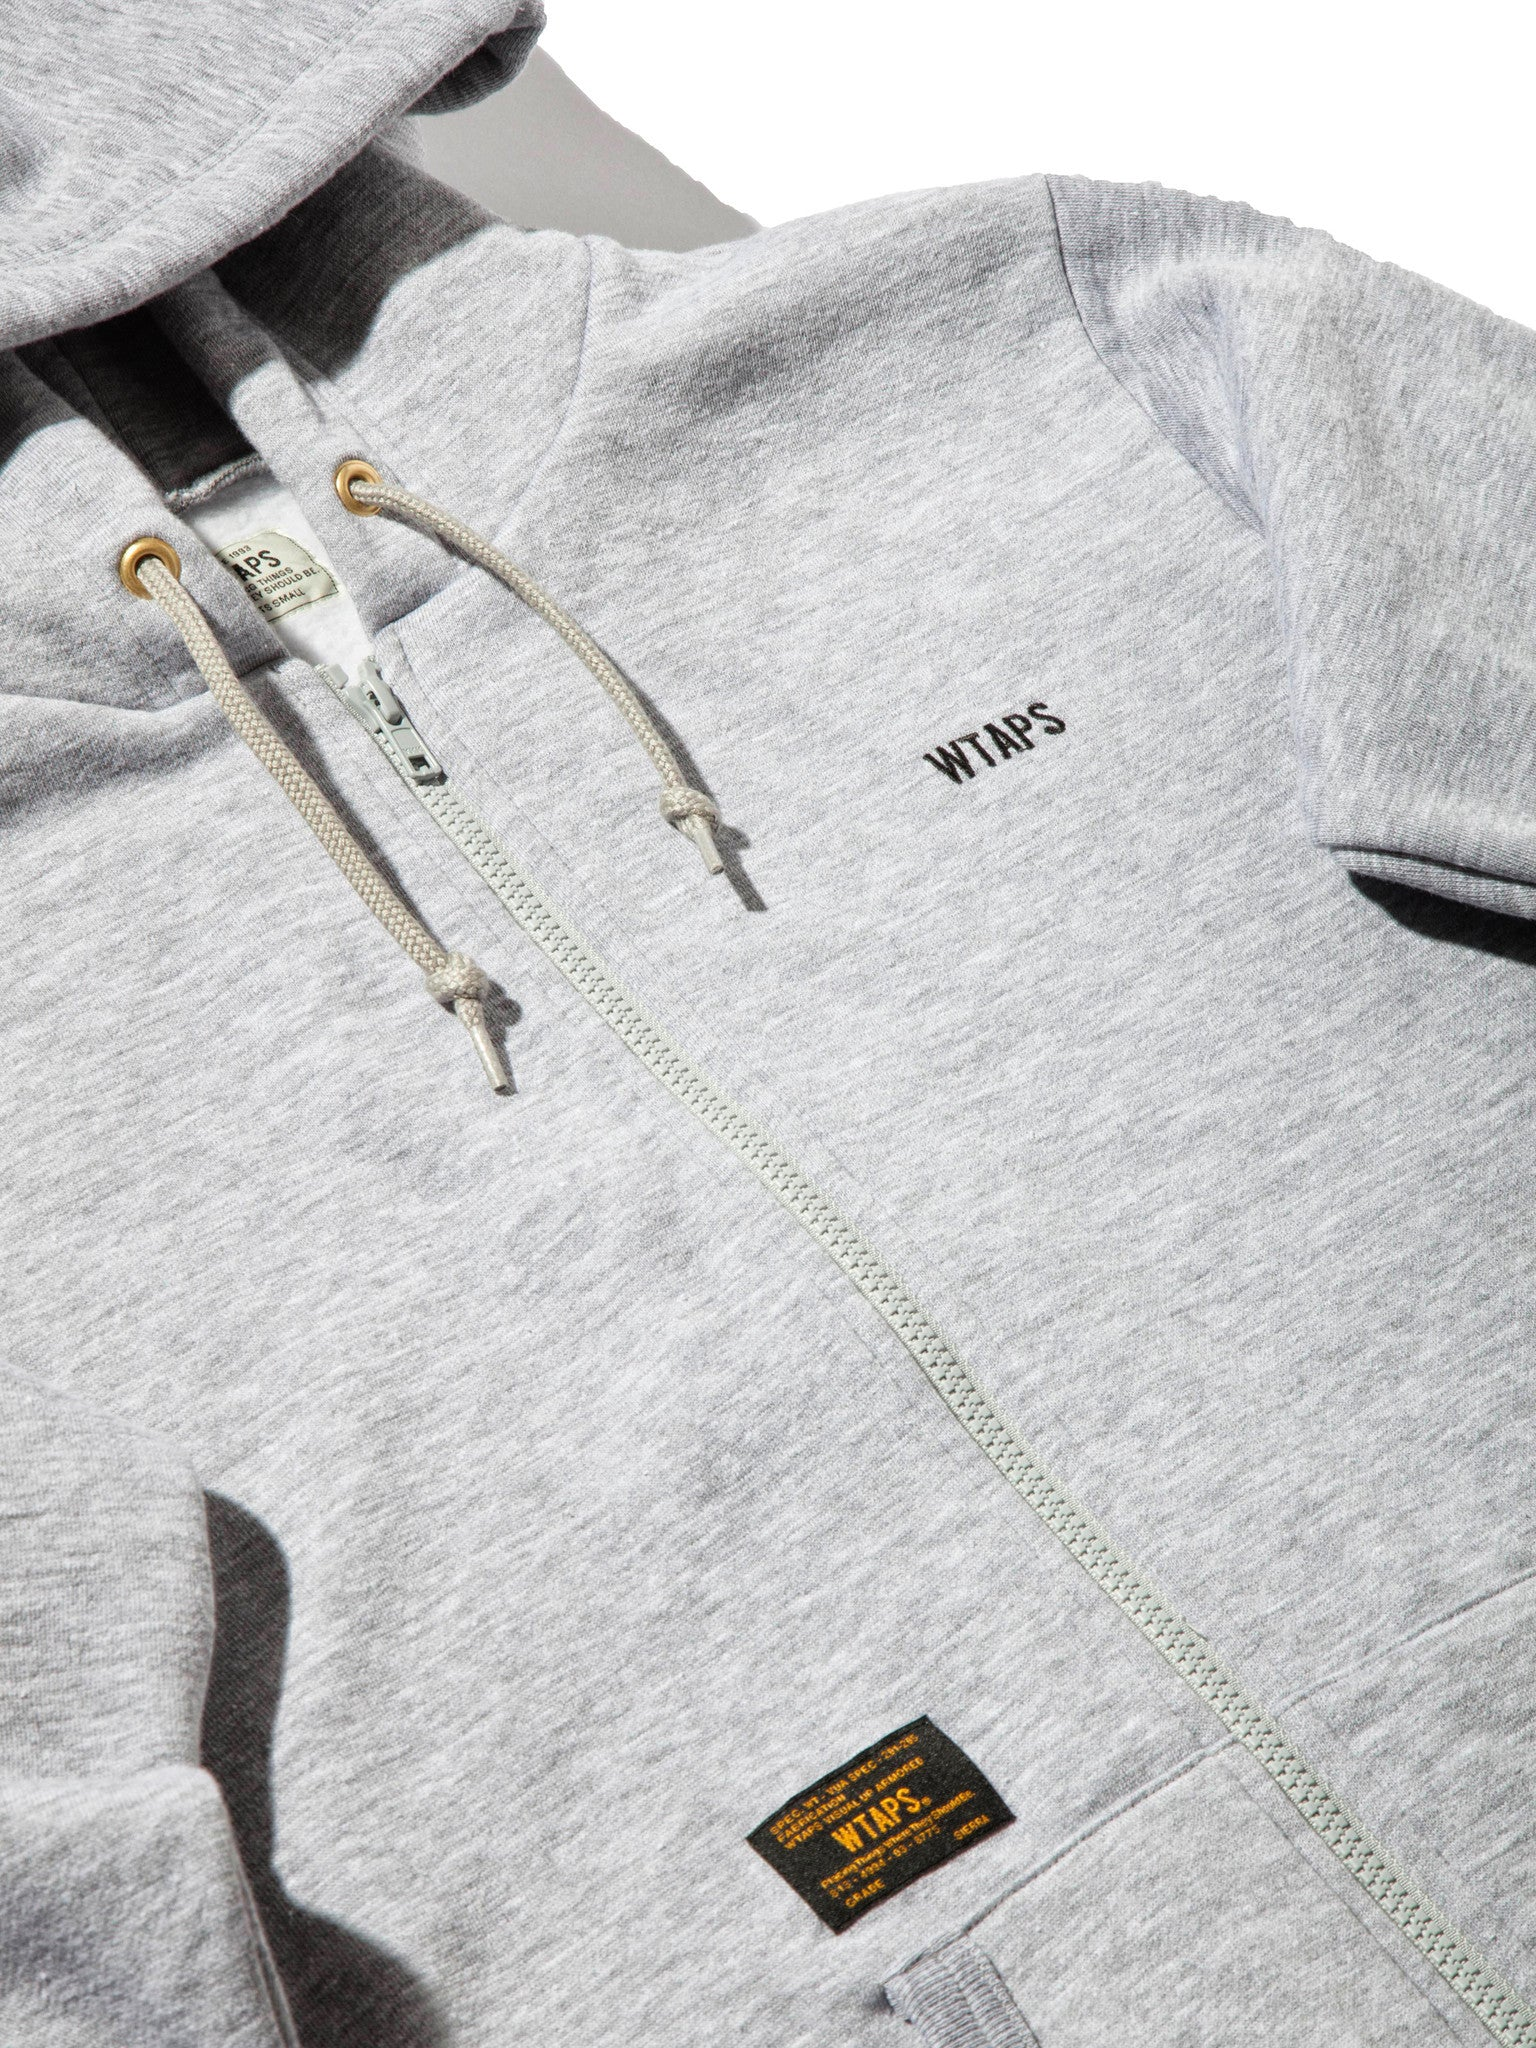 Olive Drab Hellweek Zip Up WTVUA Sweatshirt 6